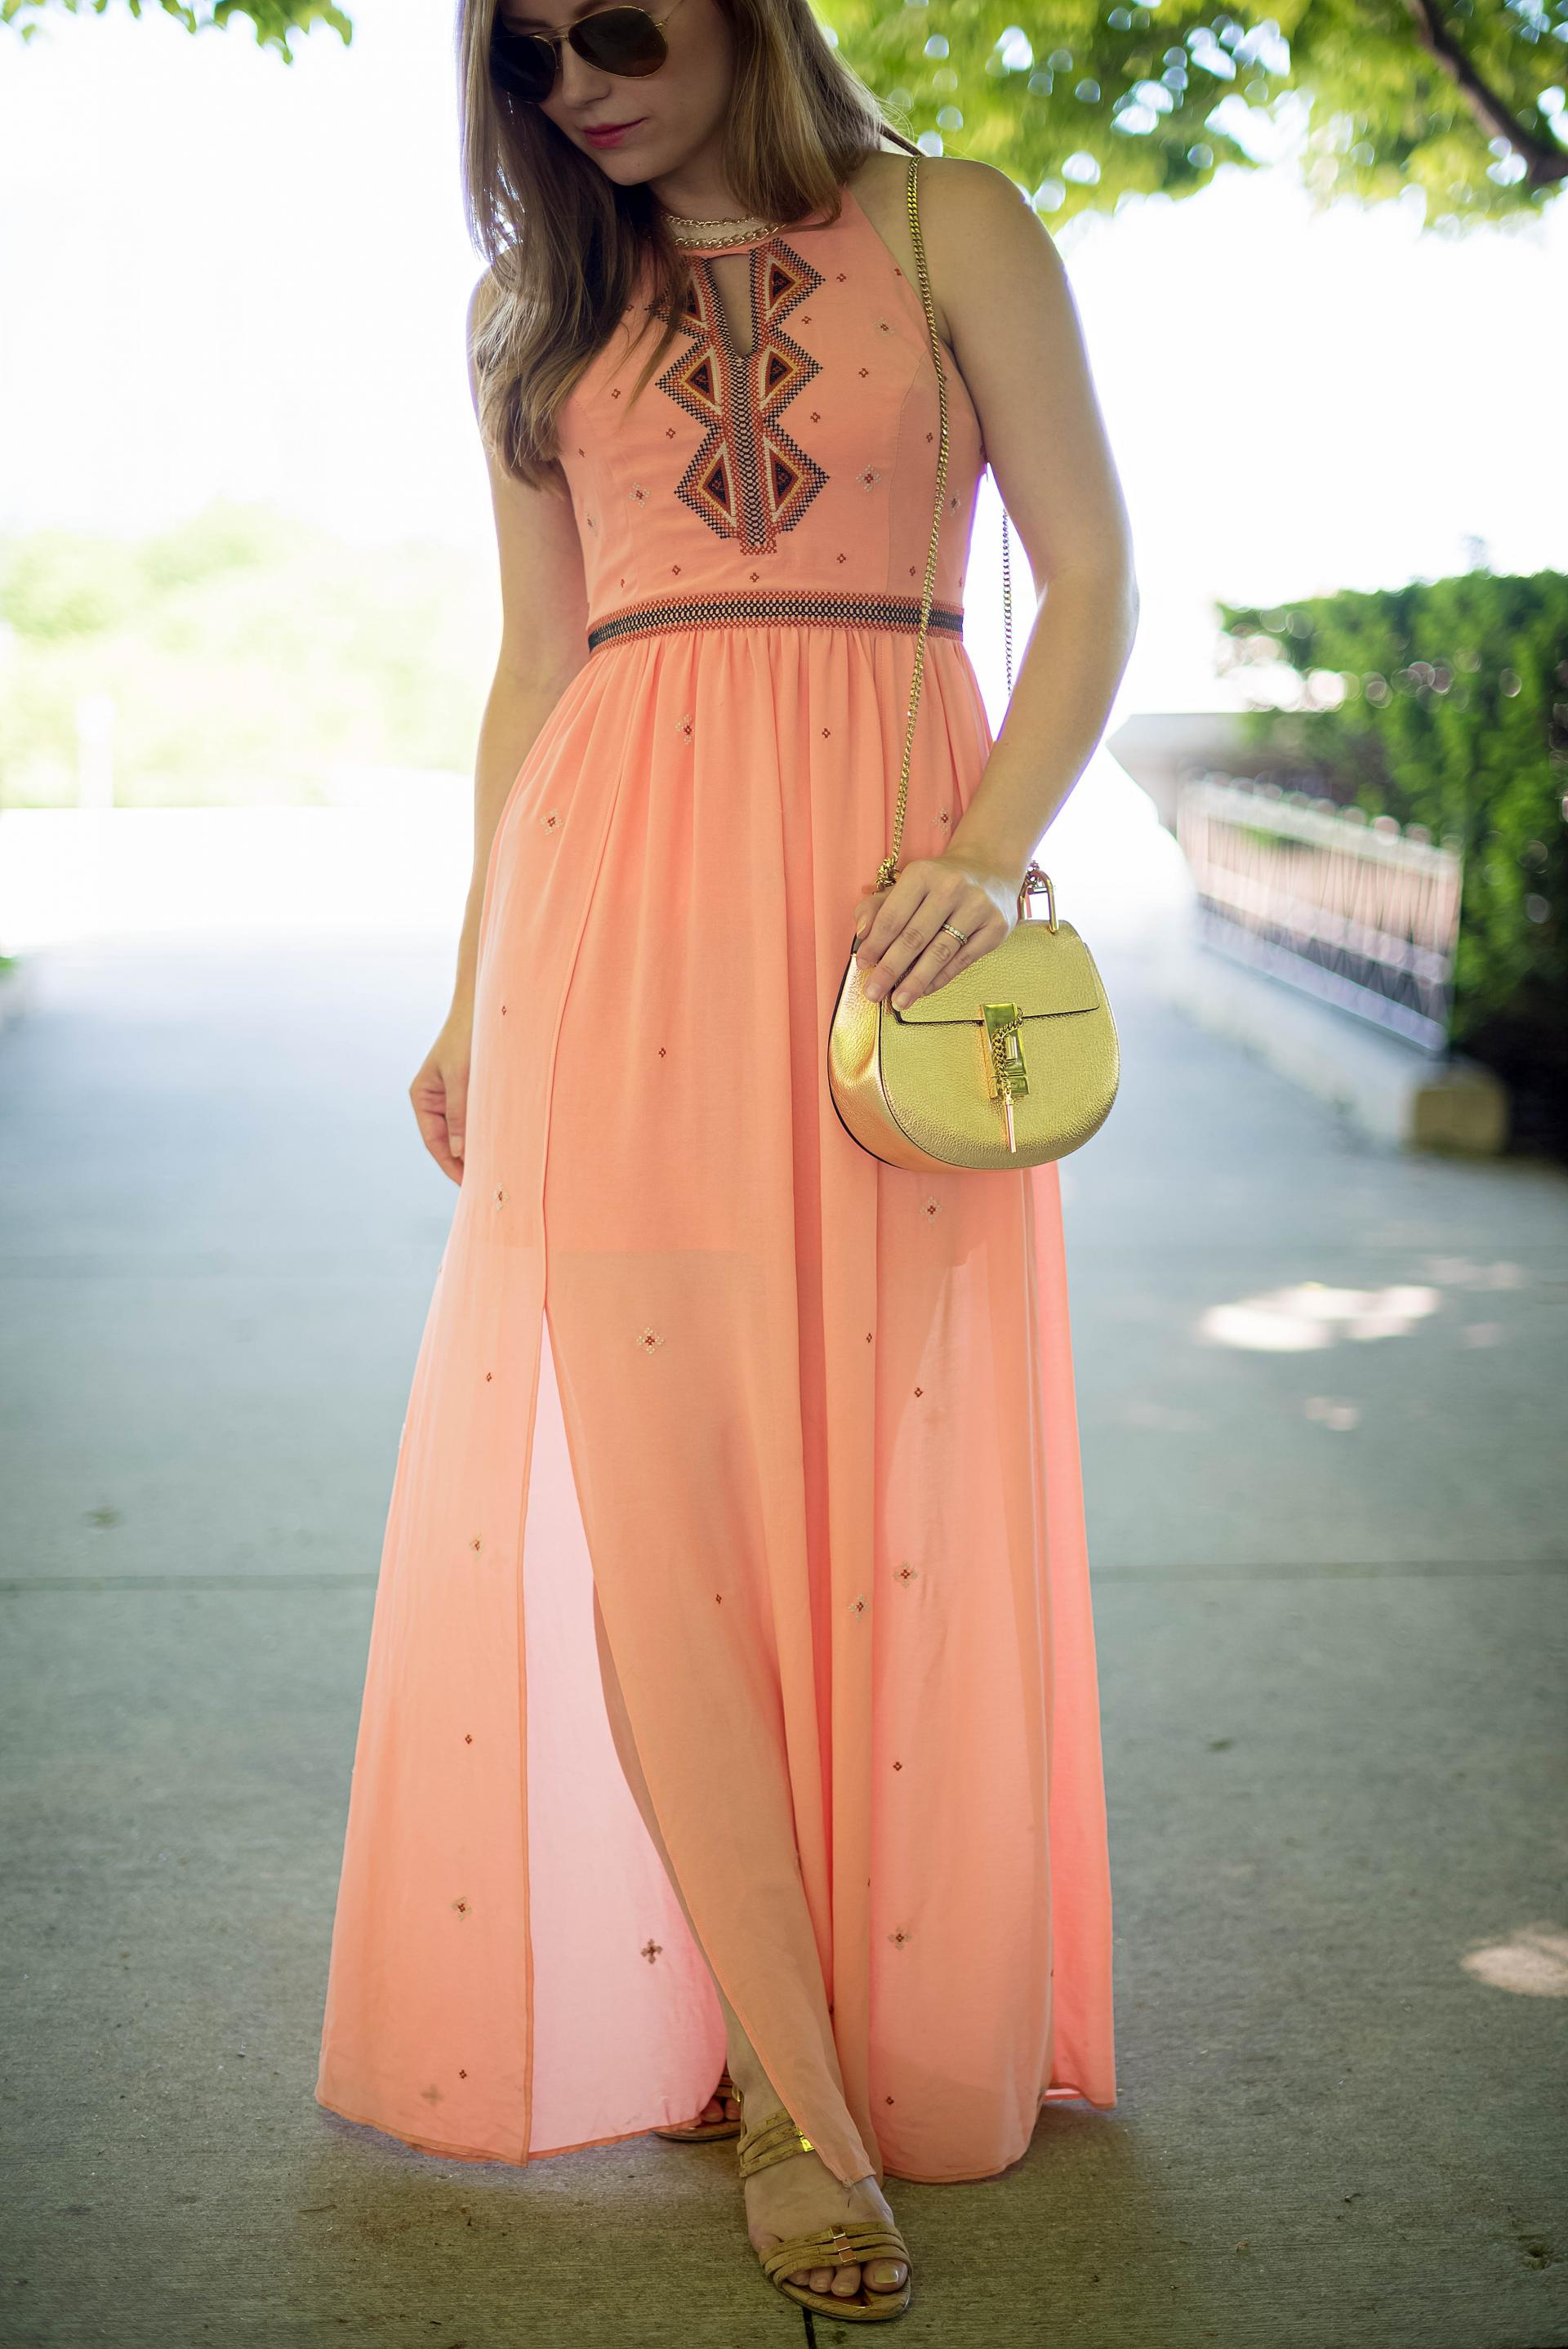 Coral Maxi Dress Summer Outfit